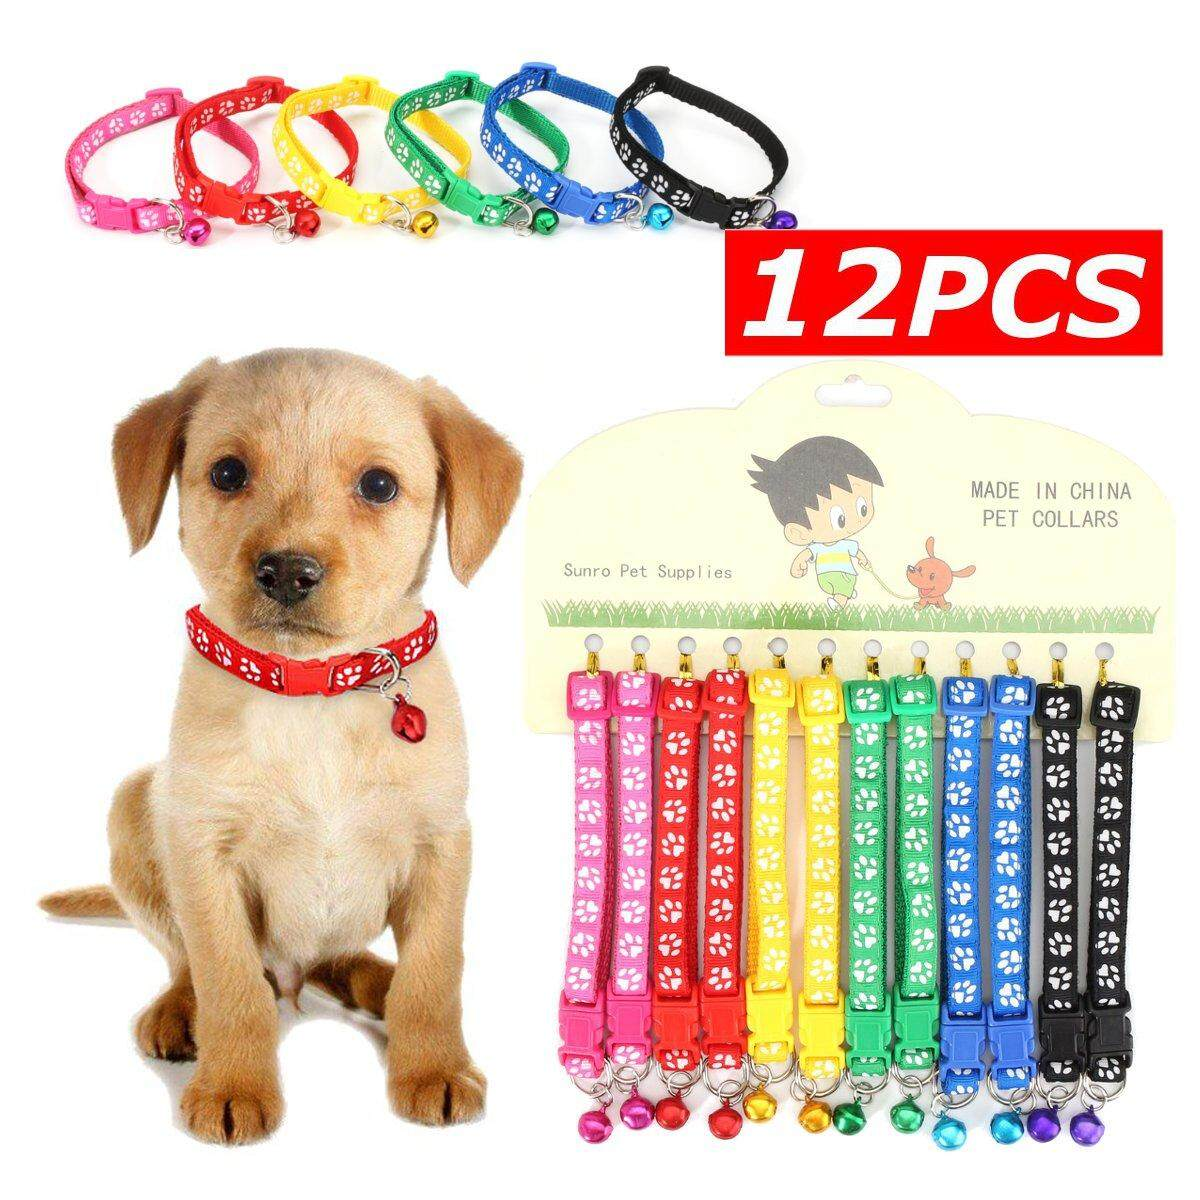 12pcs/lot Dog Collars Pet Cat Nylon Collar With Bell Necklace Buckle Wholesale By Ferry